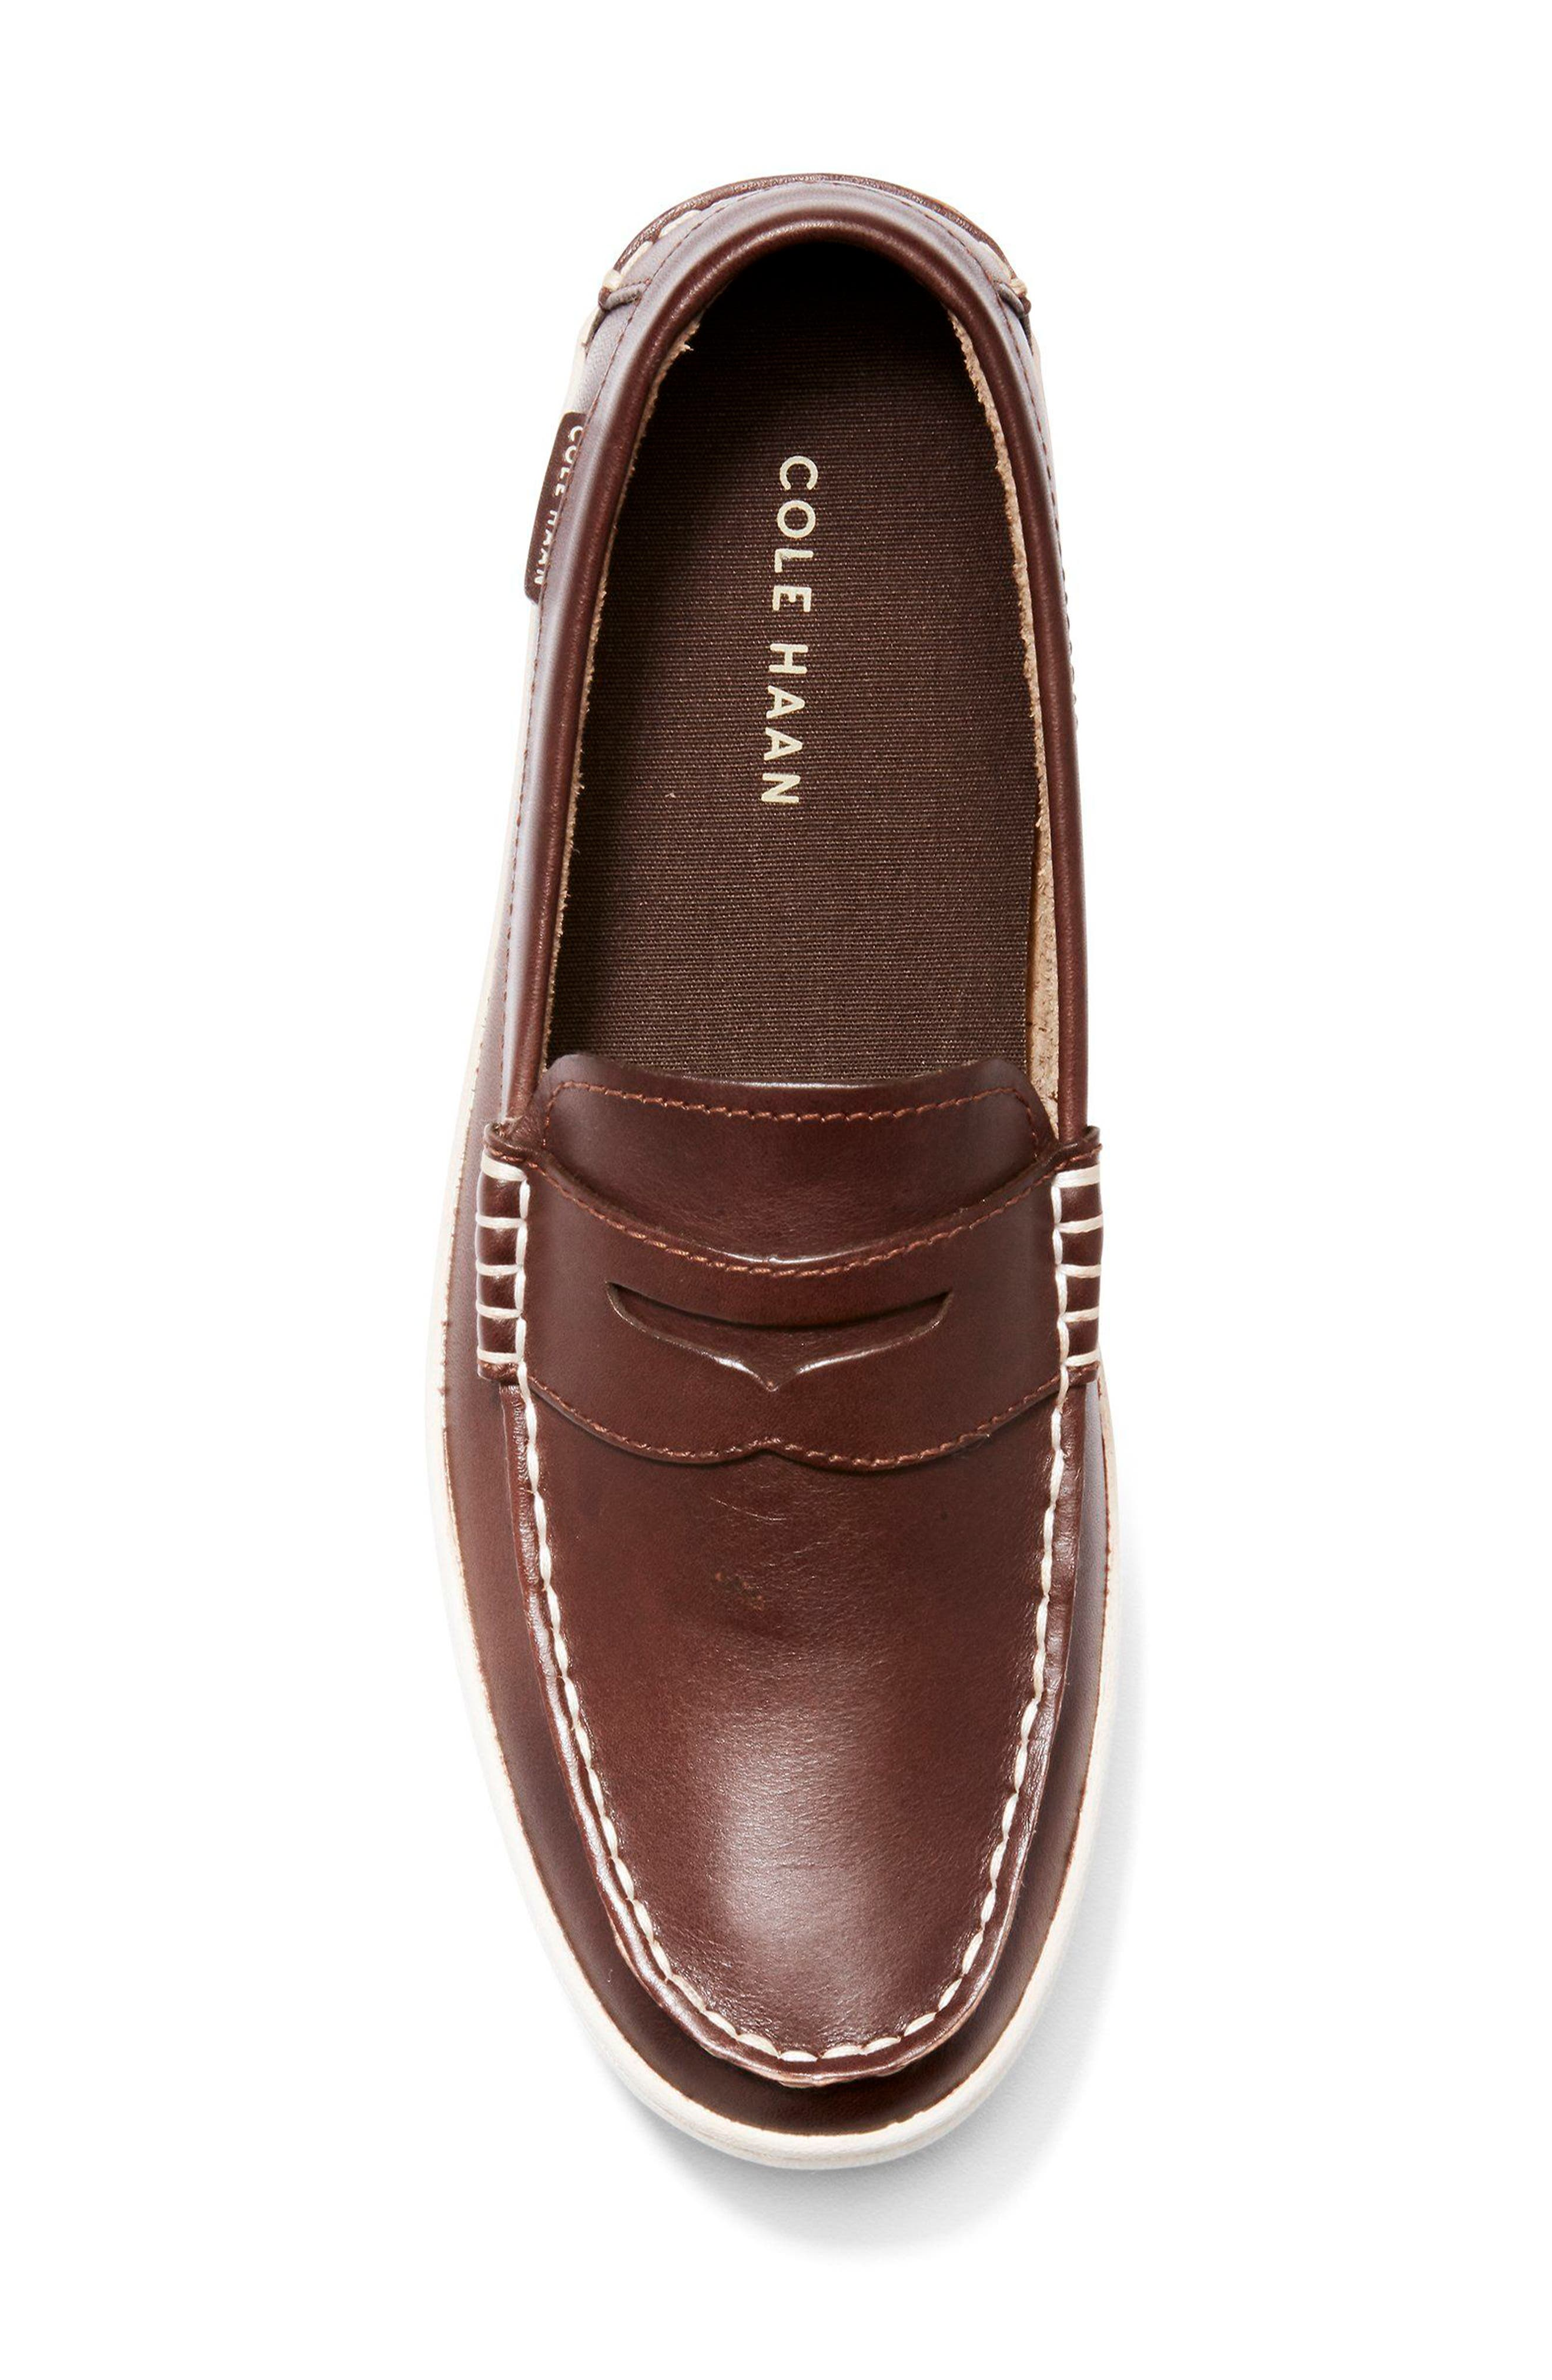 'Pinch Roadtrip' Penny Loafer,                             Alternate thumbnail 6, color,                             200